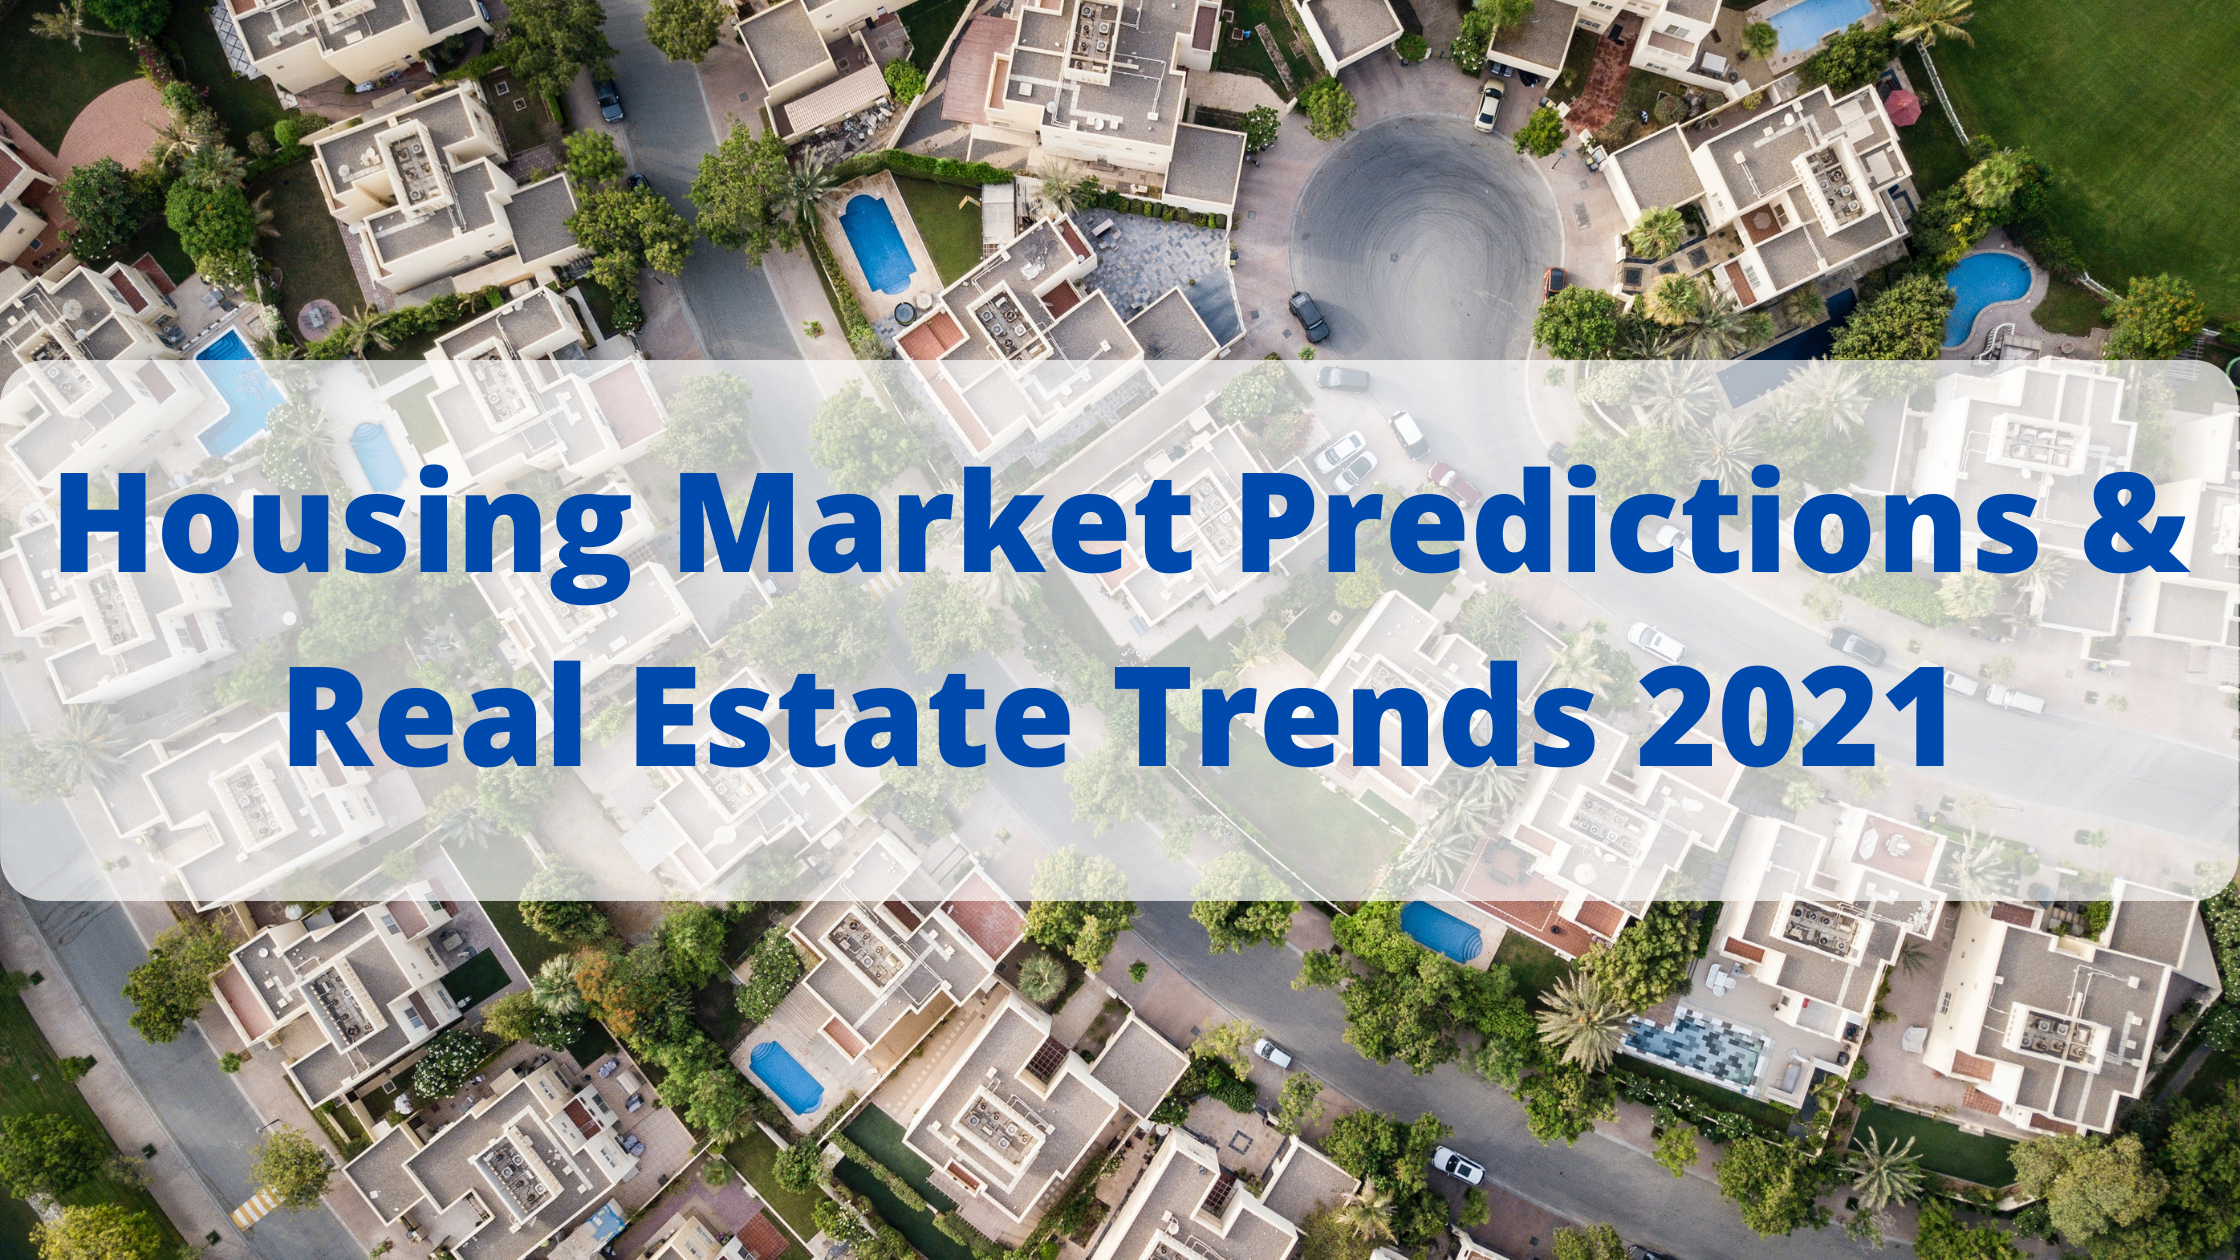 Housing market predictions and real estate trends 2021